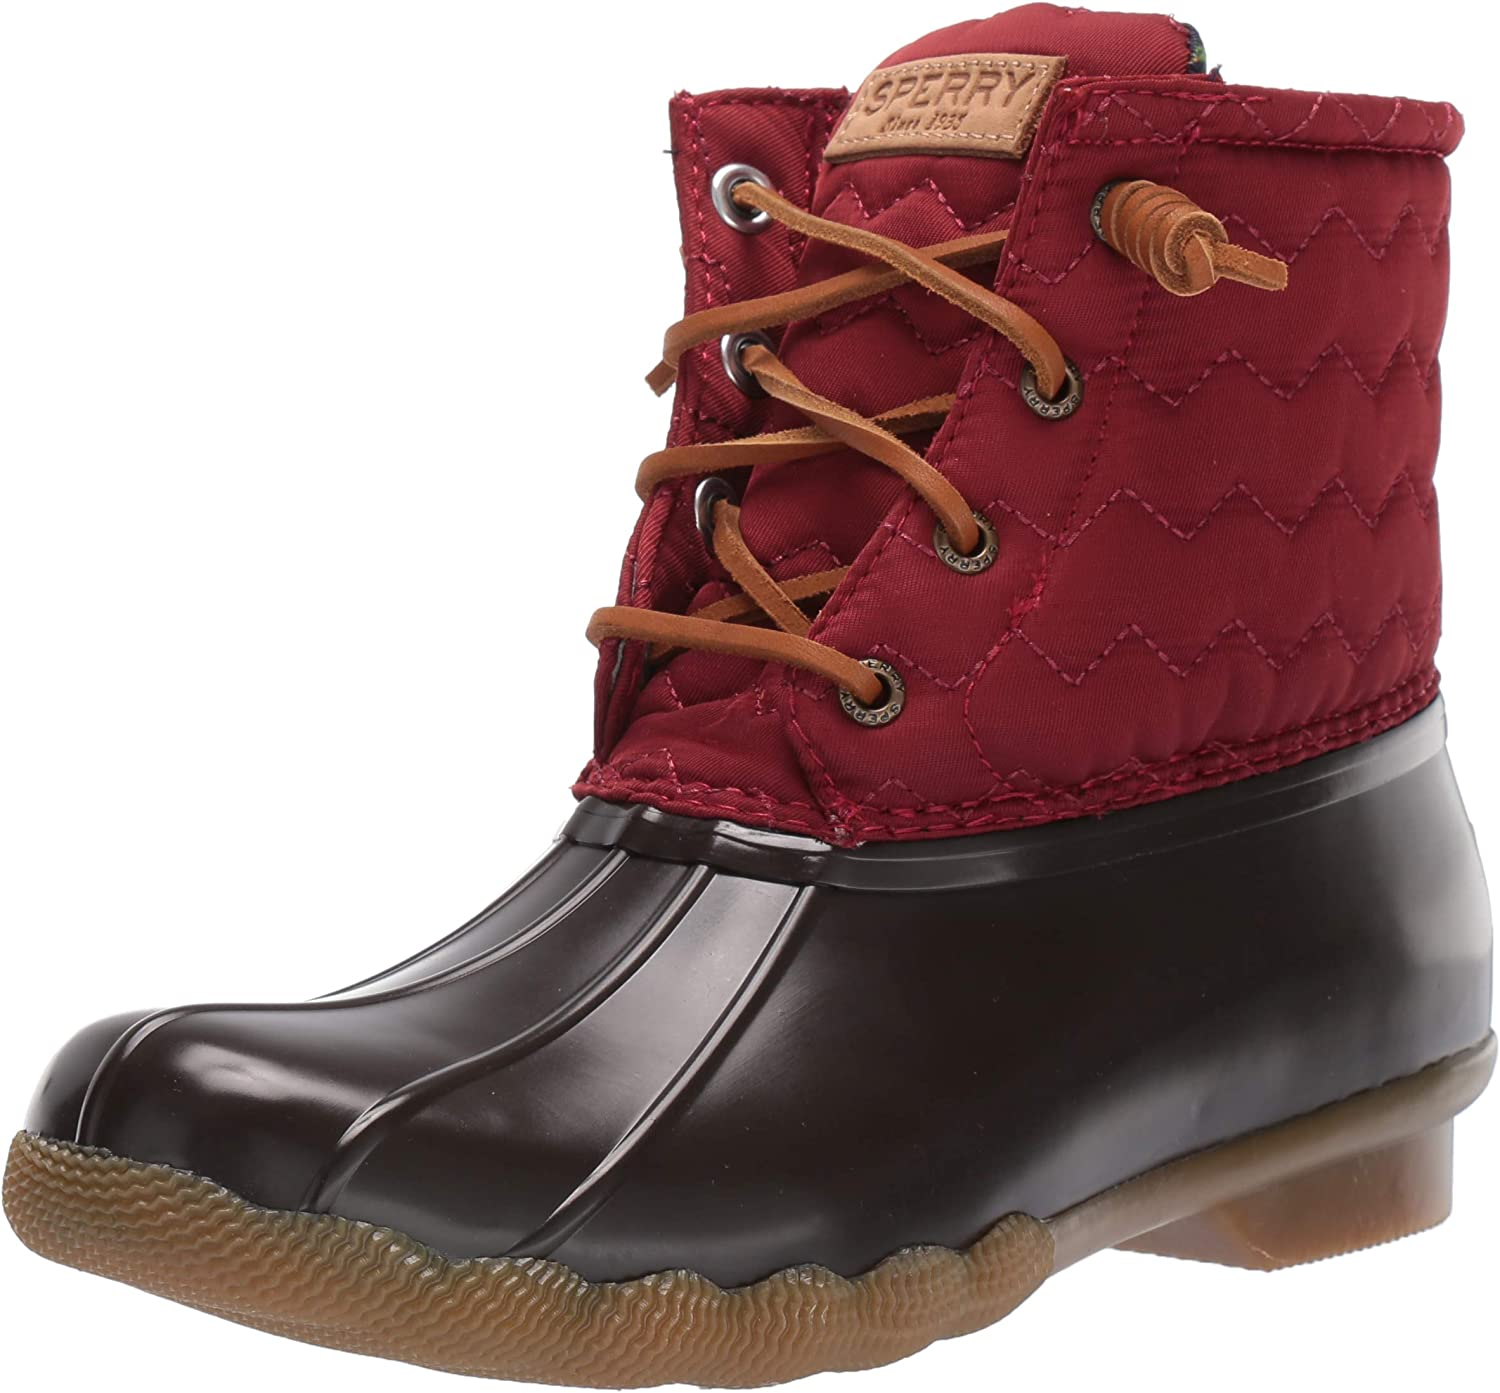 Sperry Women's Saltwater Chevron Quilt Nylon Boots